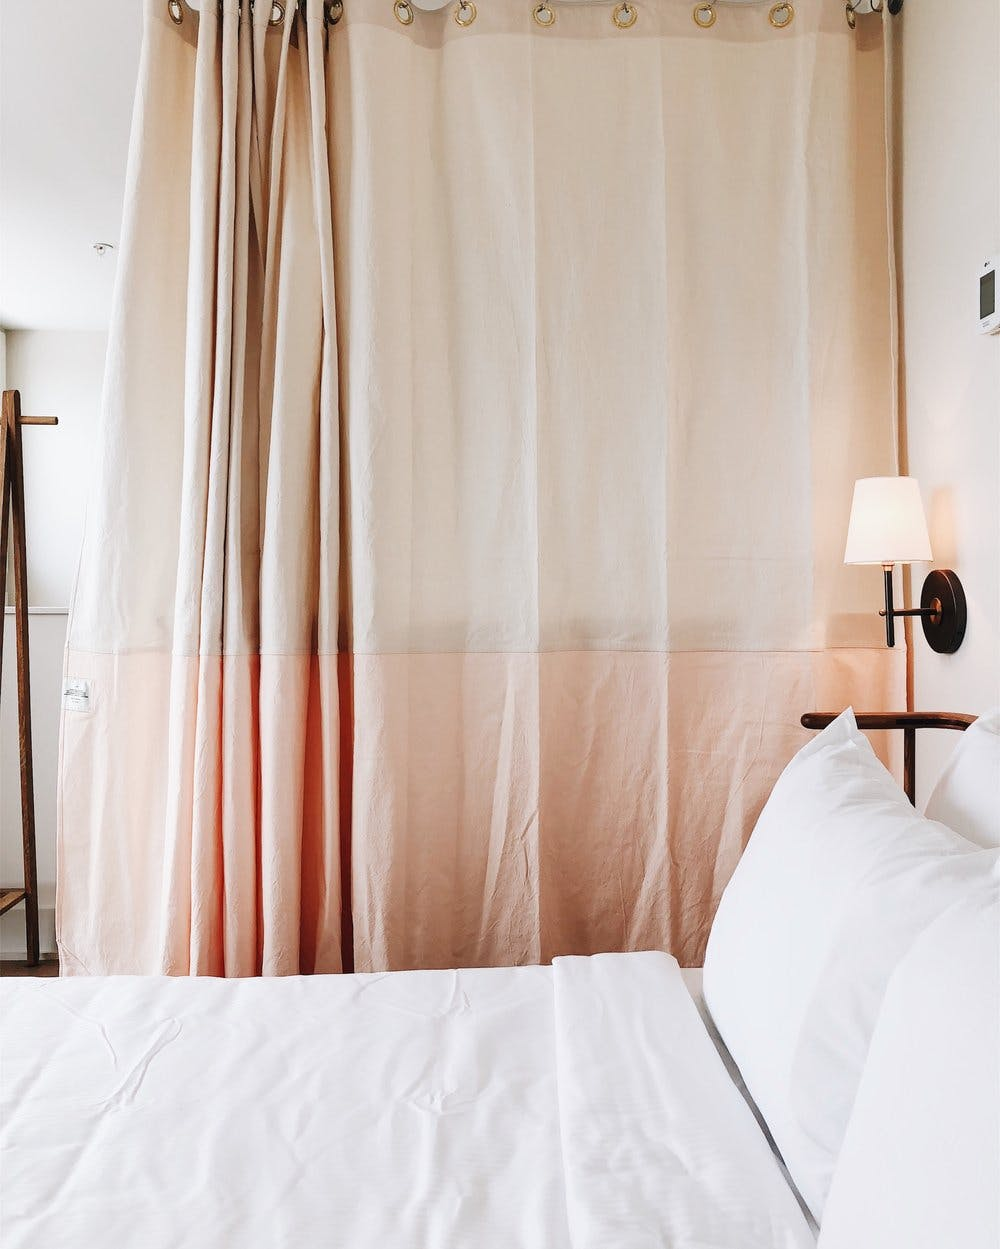 a bedroom with a bed and a curtain